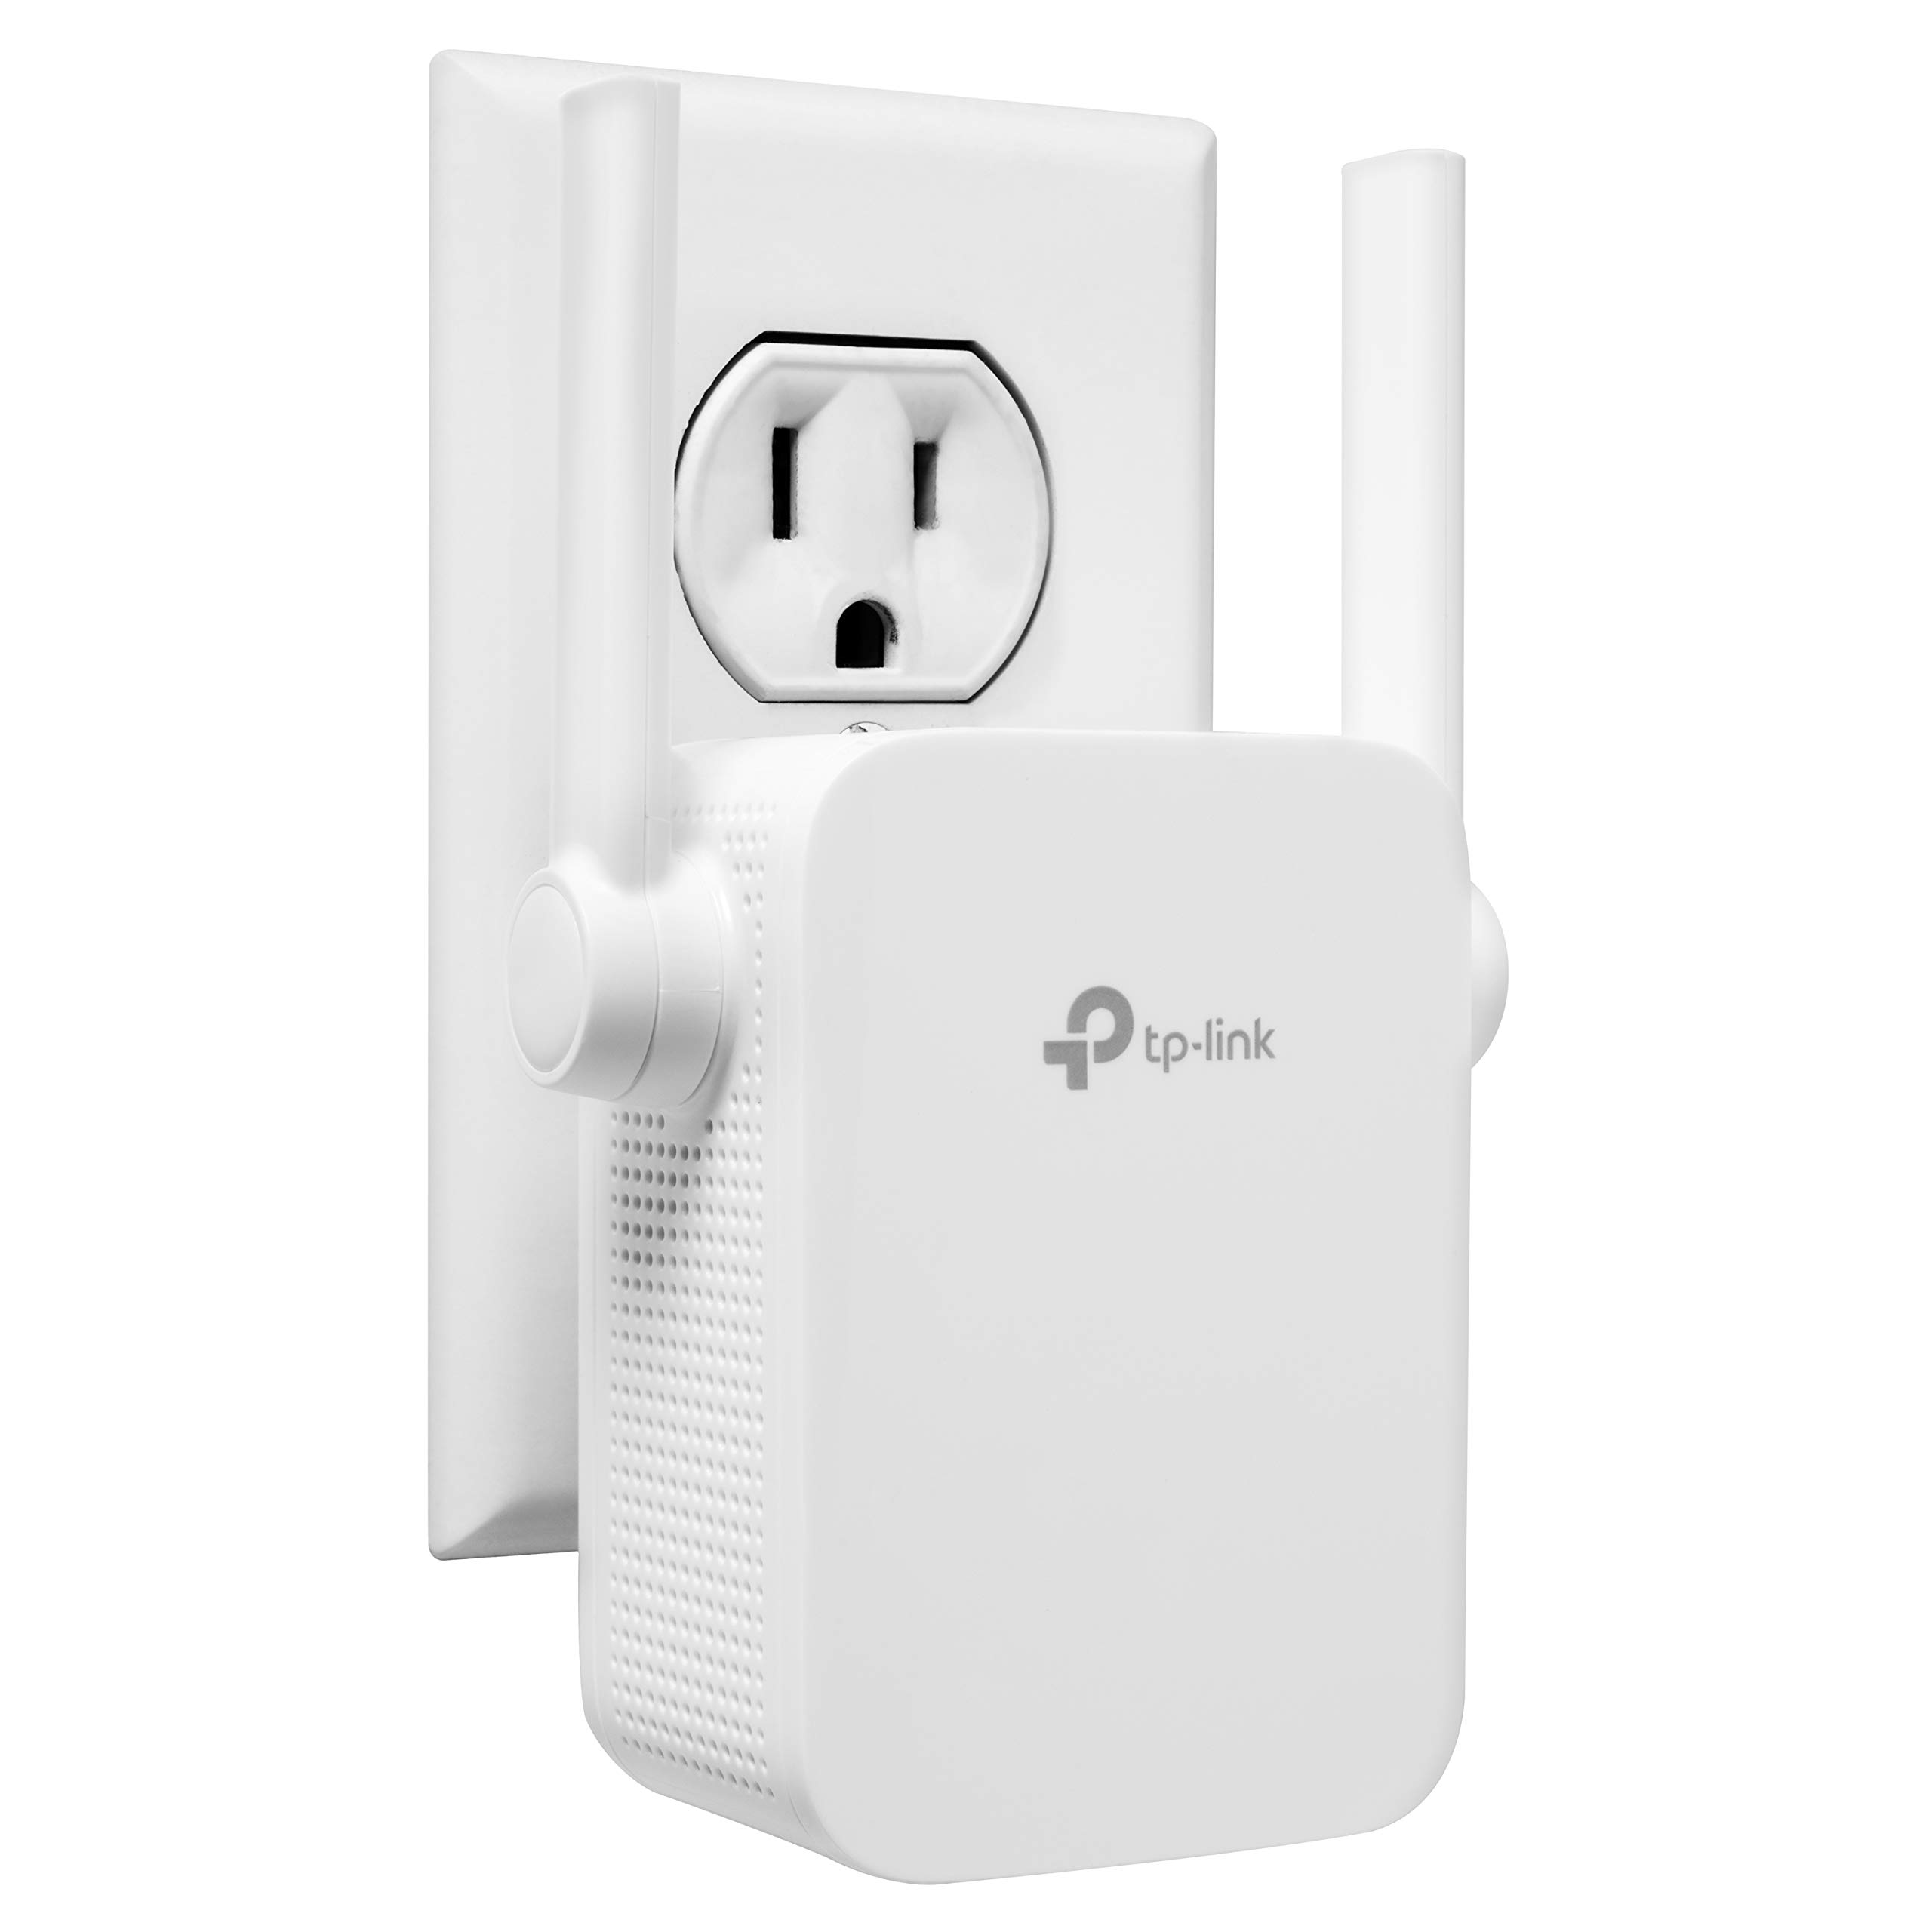 TP-Link | N300 WiFi Range Extender | Up to 300Mbps | WiFi Extender, Repeater, Wifi Signal Booster, Access Point | Easy Set-Up | External Antennas & Compact Designed Internet Booster (TL-WA855RE) by TP-LINK